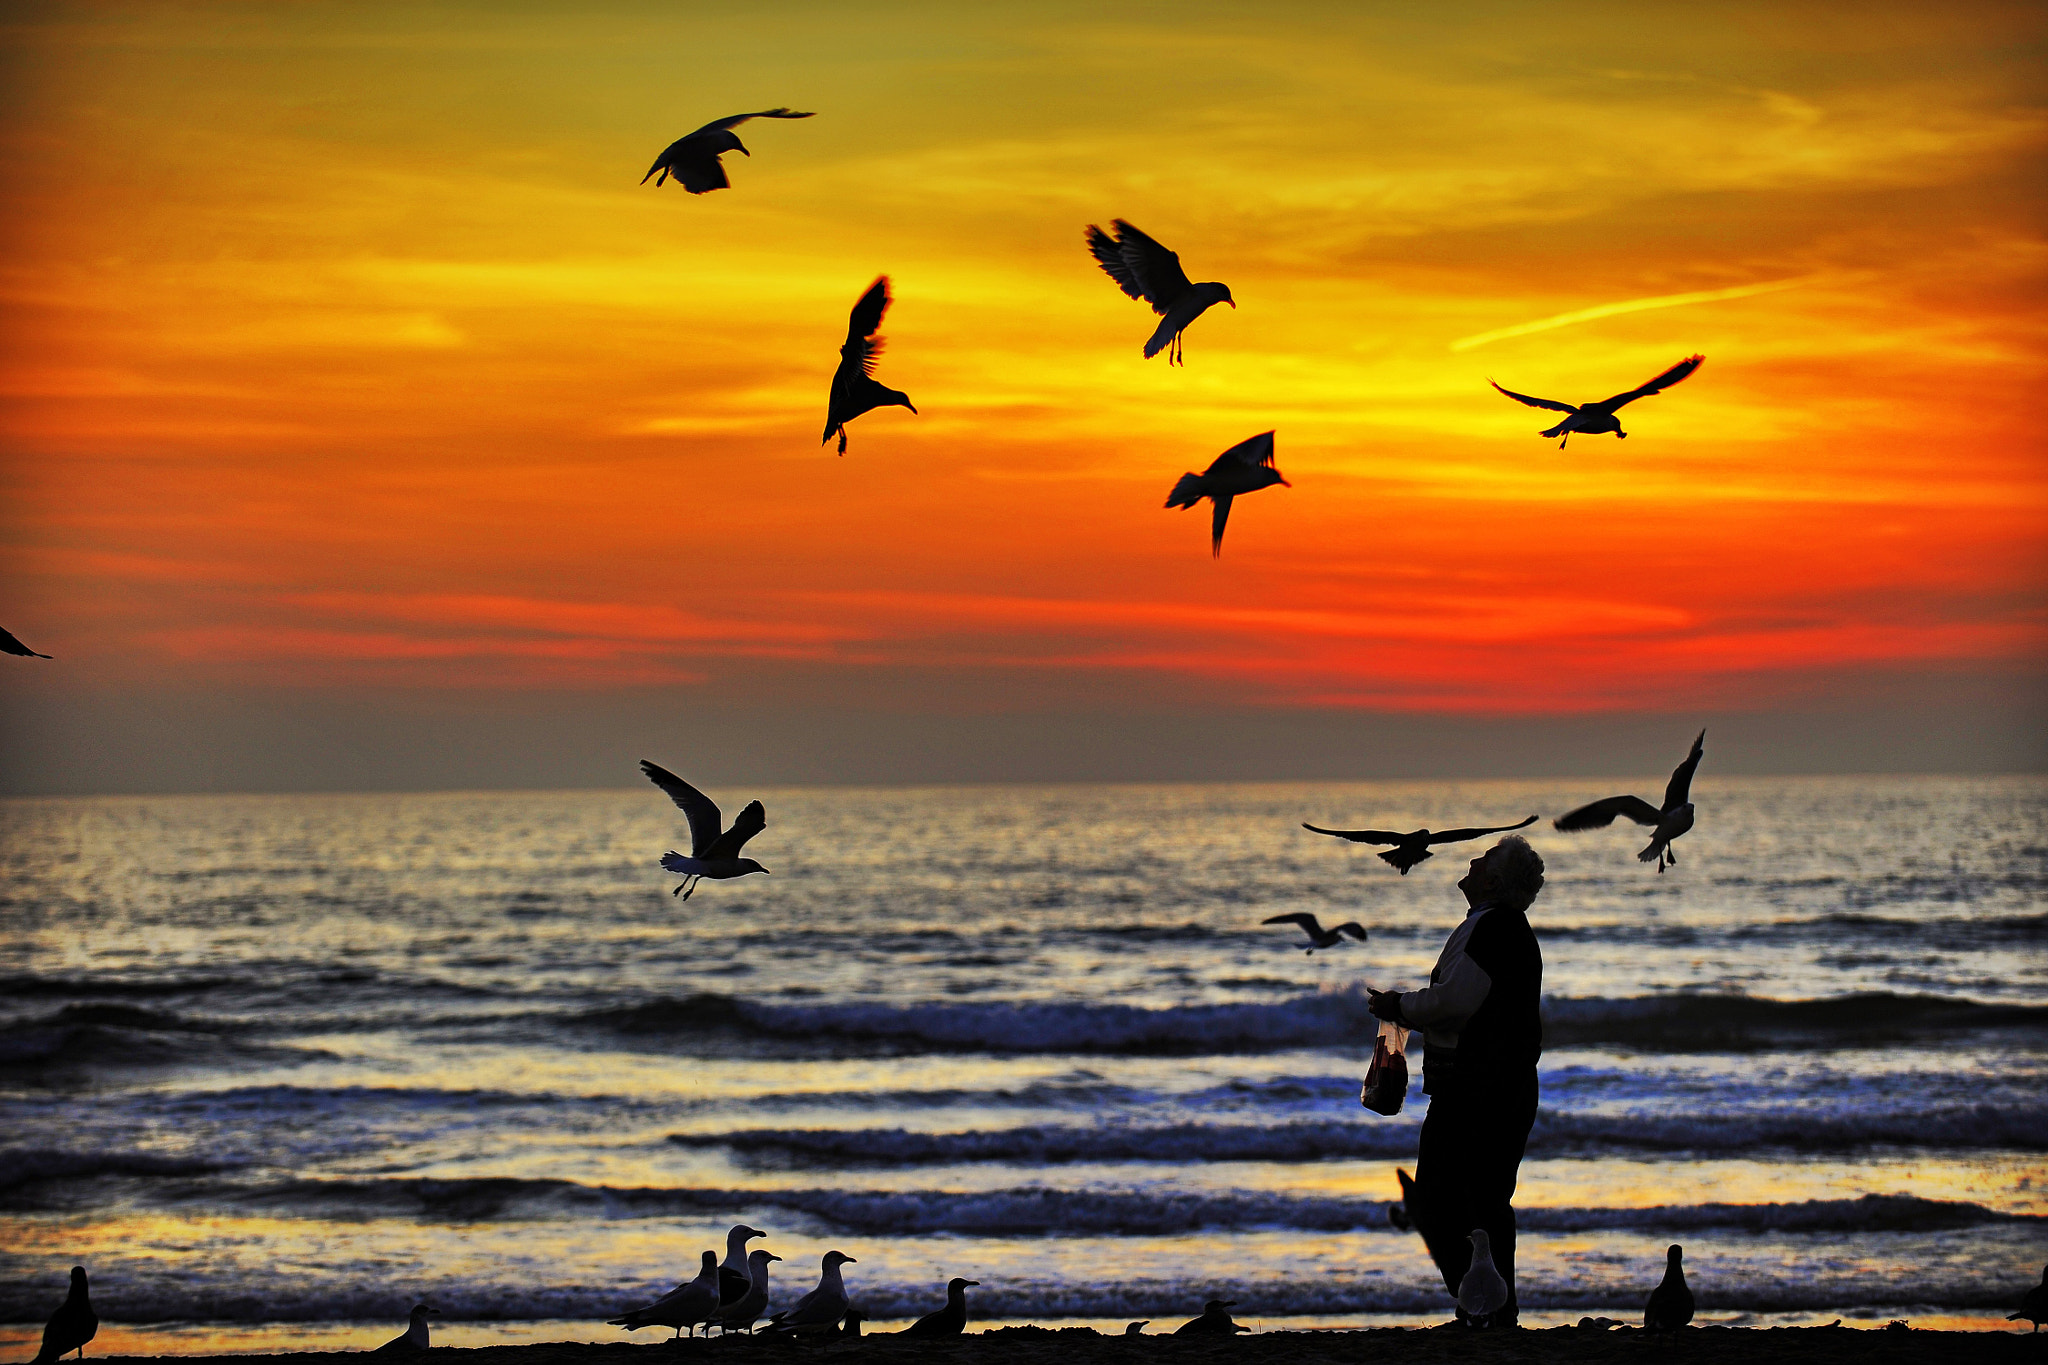 Photograph A Man Feeds the Seagulls at Sunset in Oceanside  by Rich Cruse on 500px